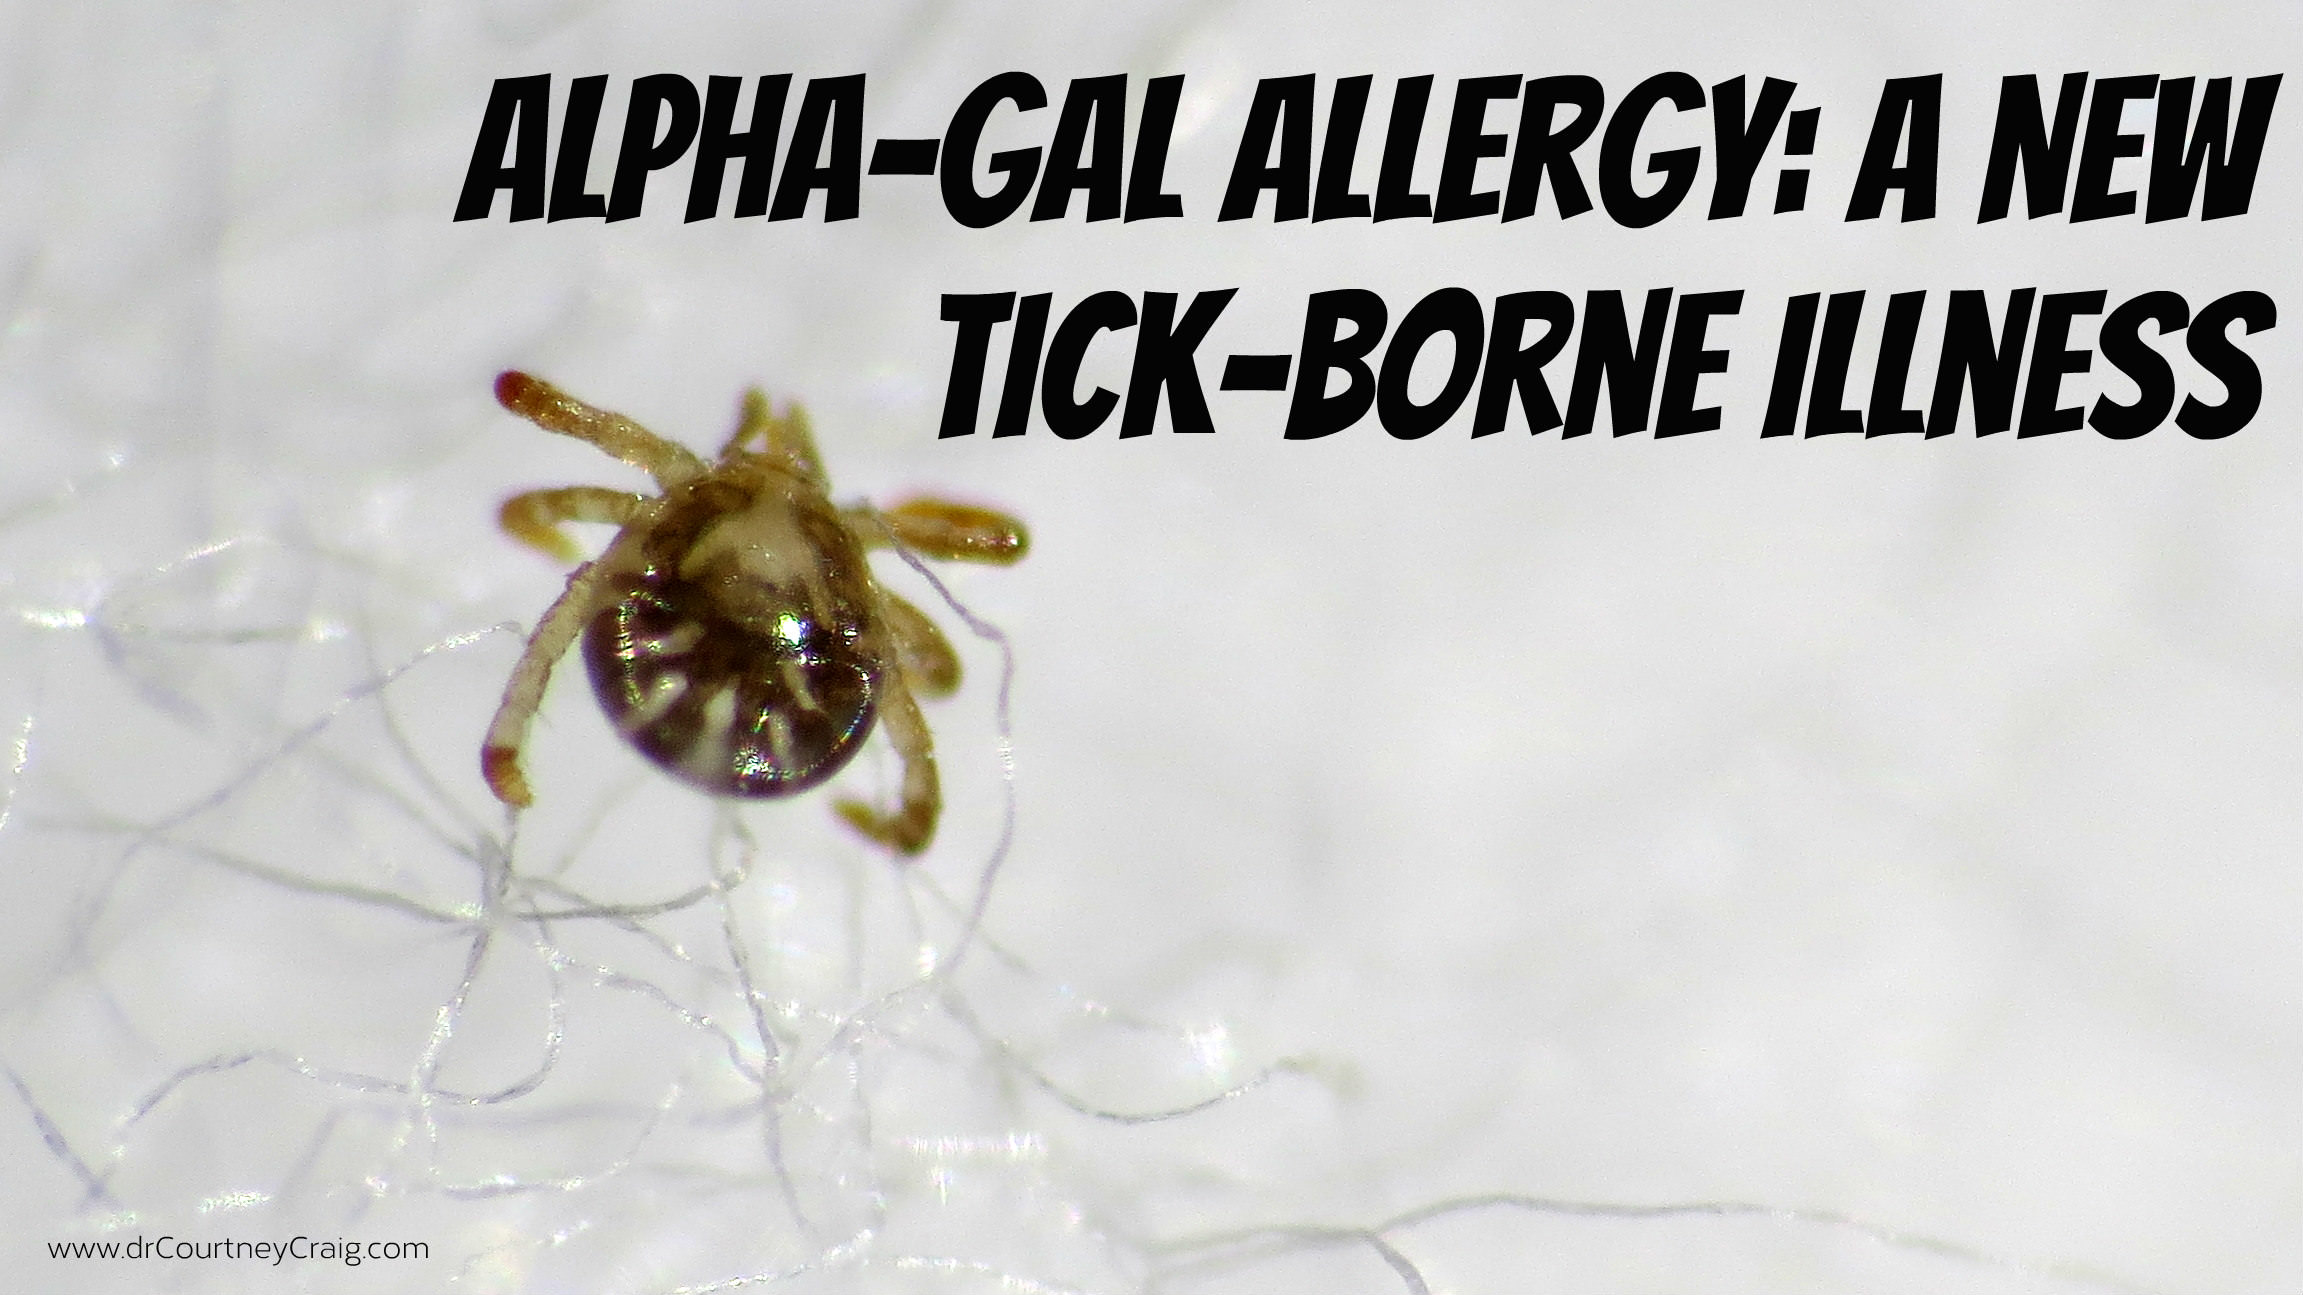 A red meat allergy following a tick bite. Learn about what alpha-gal allergy is and how it can mimic chronic fatigue syndrome or Lyme.